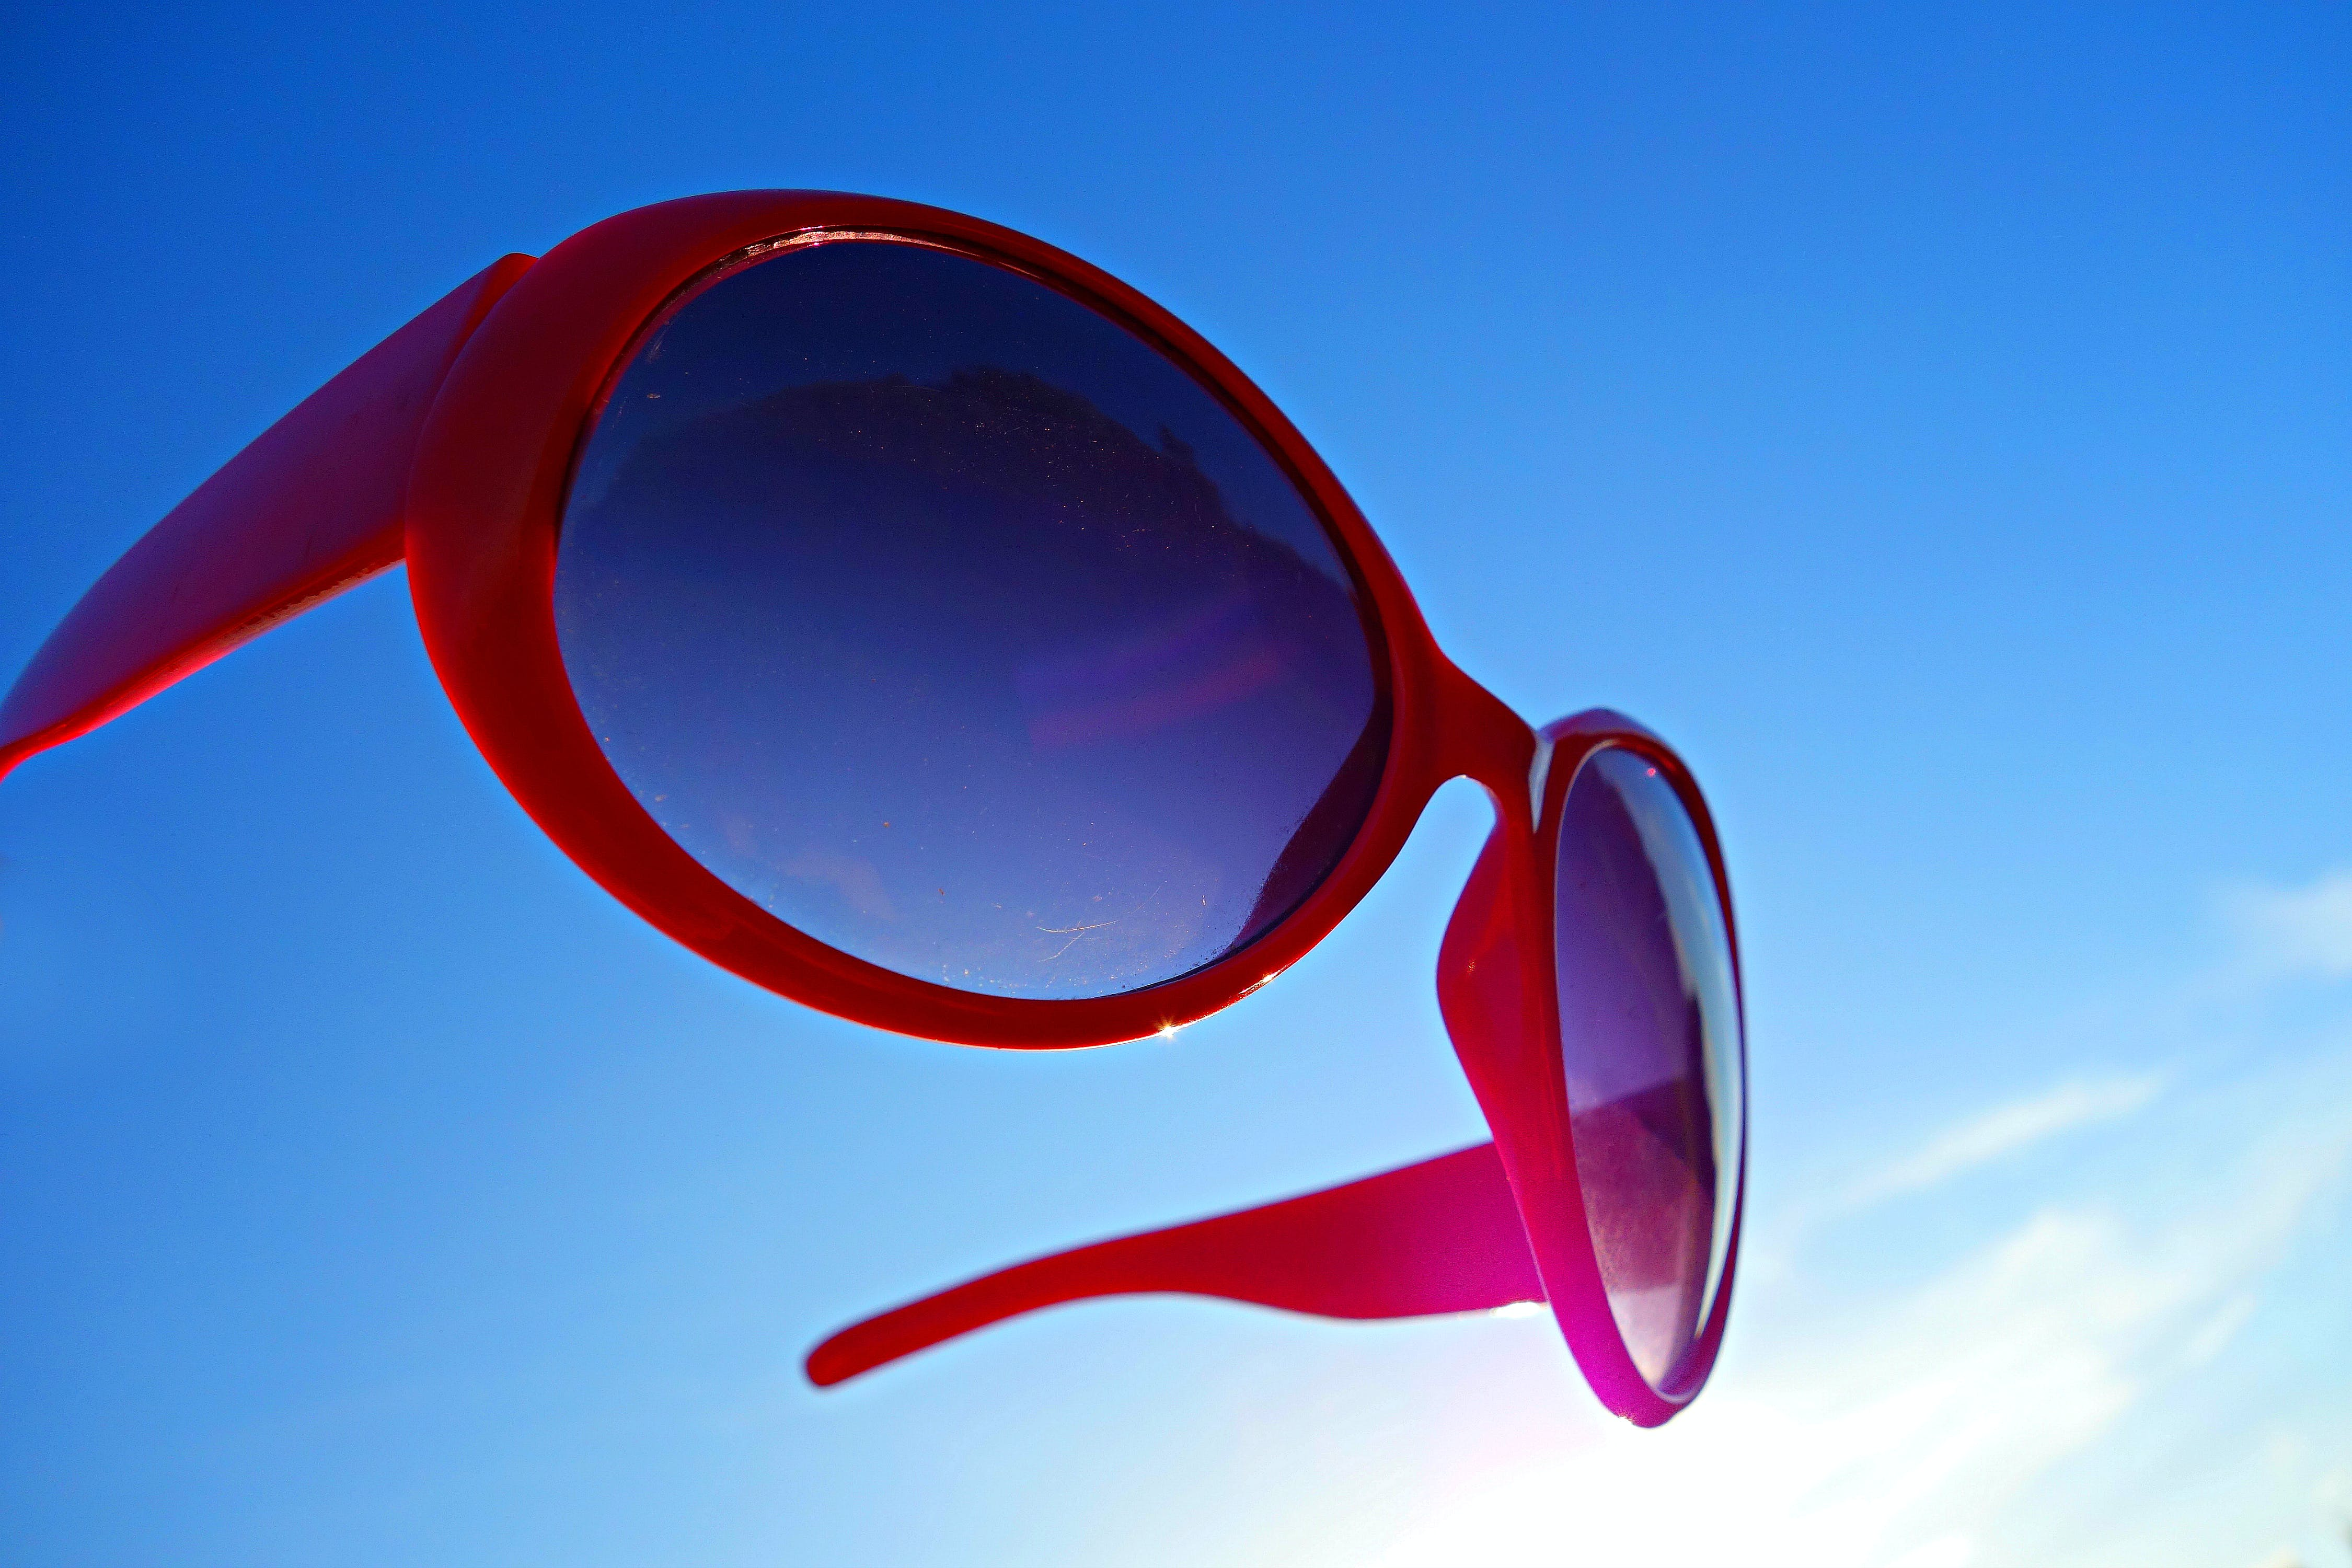 of eye wear, fashion, glasses, protection